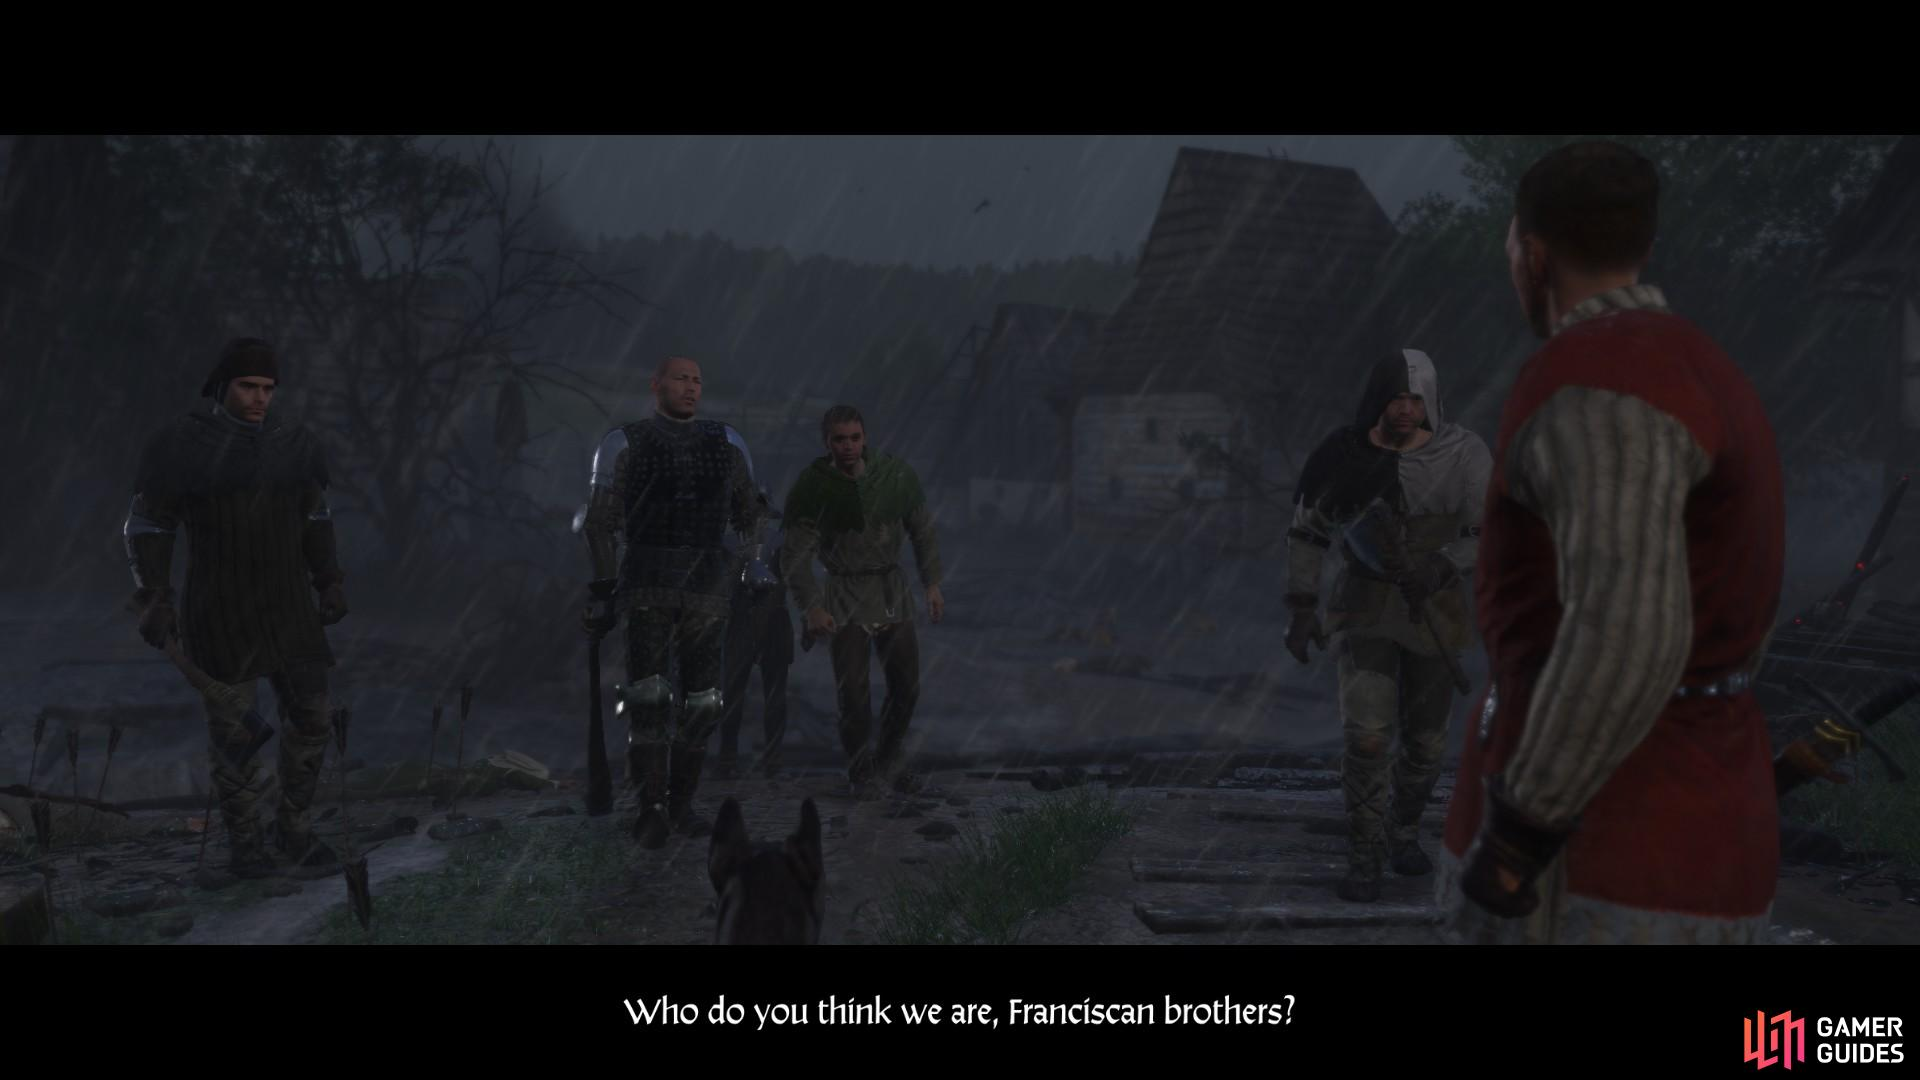 The cutscene will end with Zvyshek returning with a group of bandits and their leader, Runt.